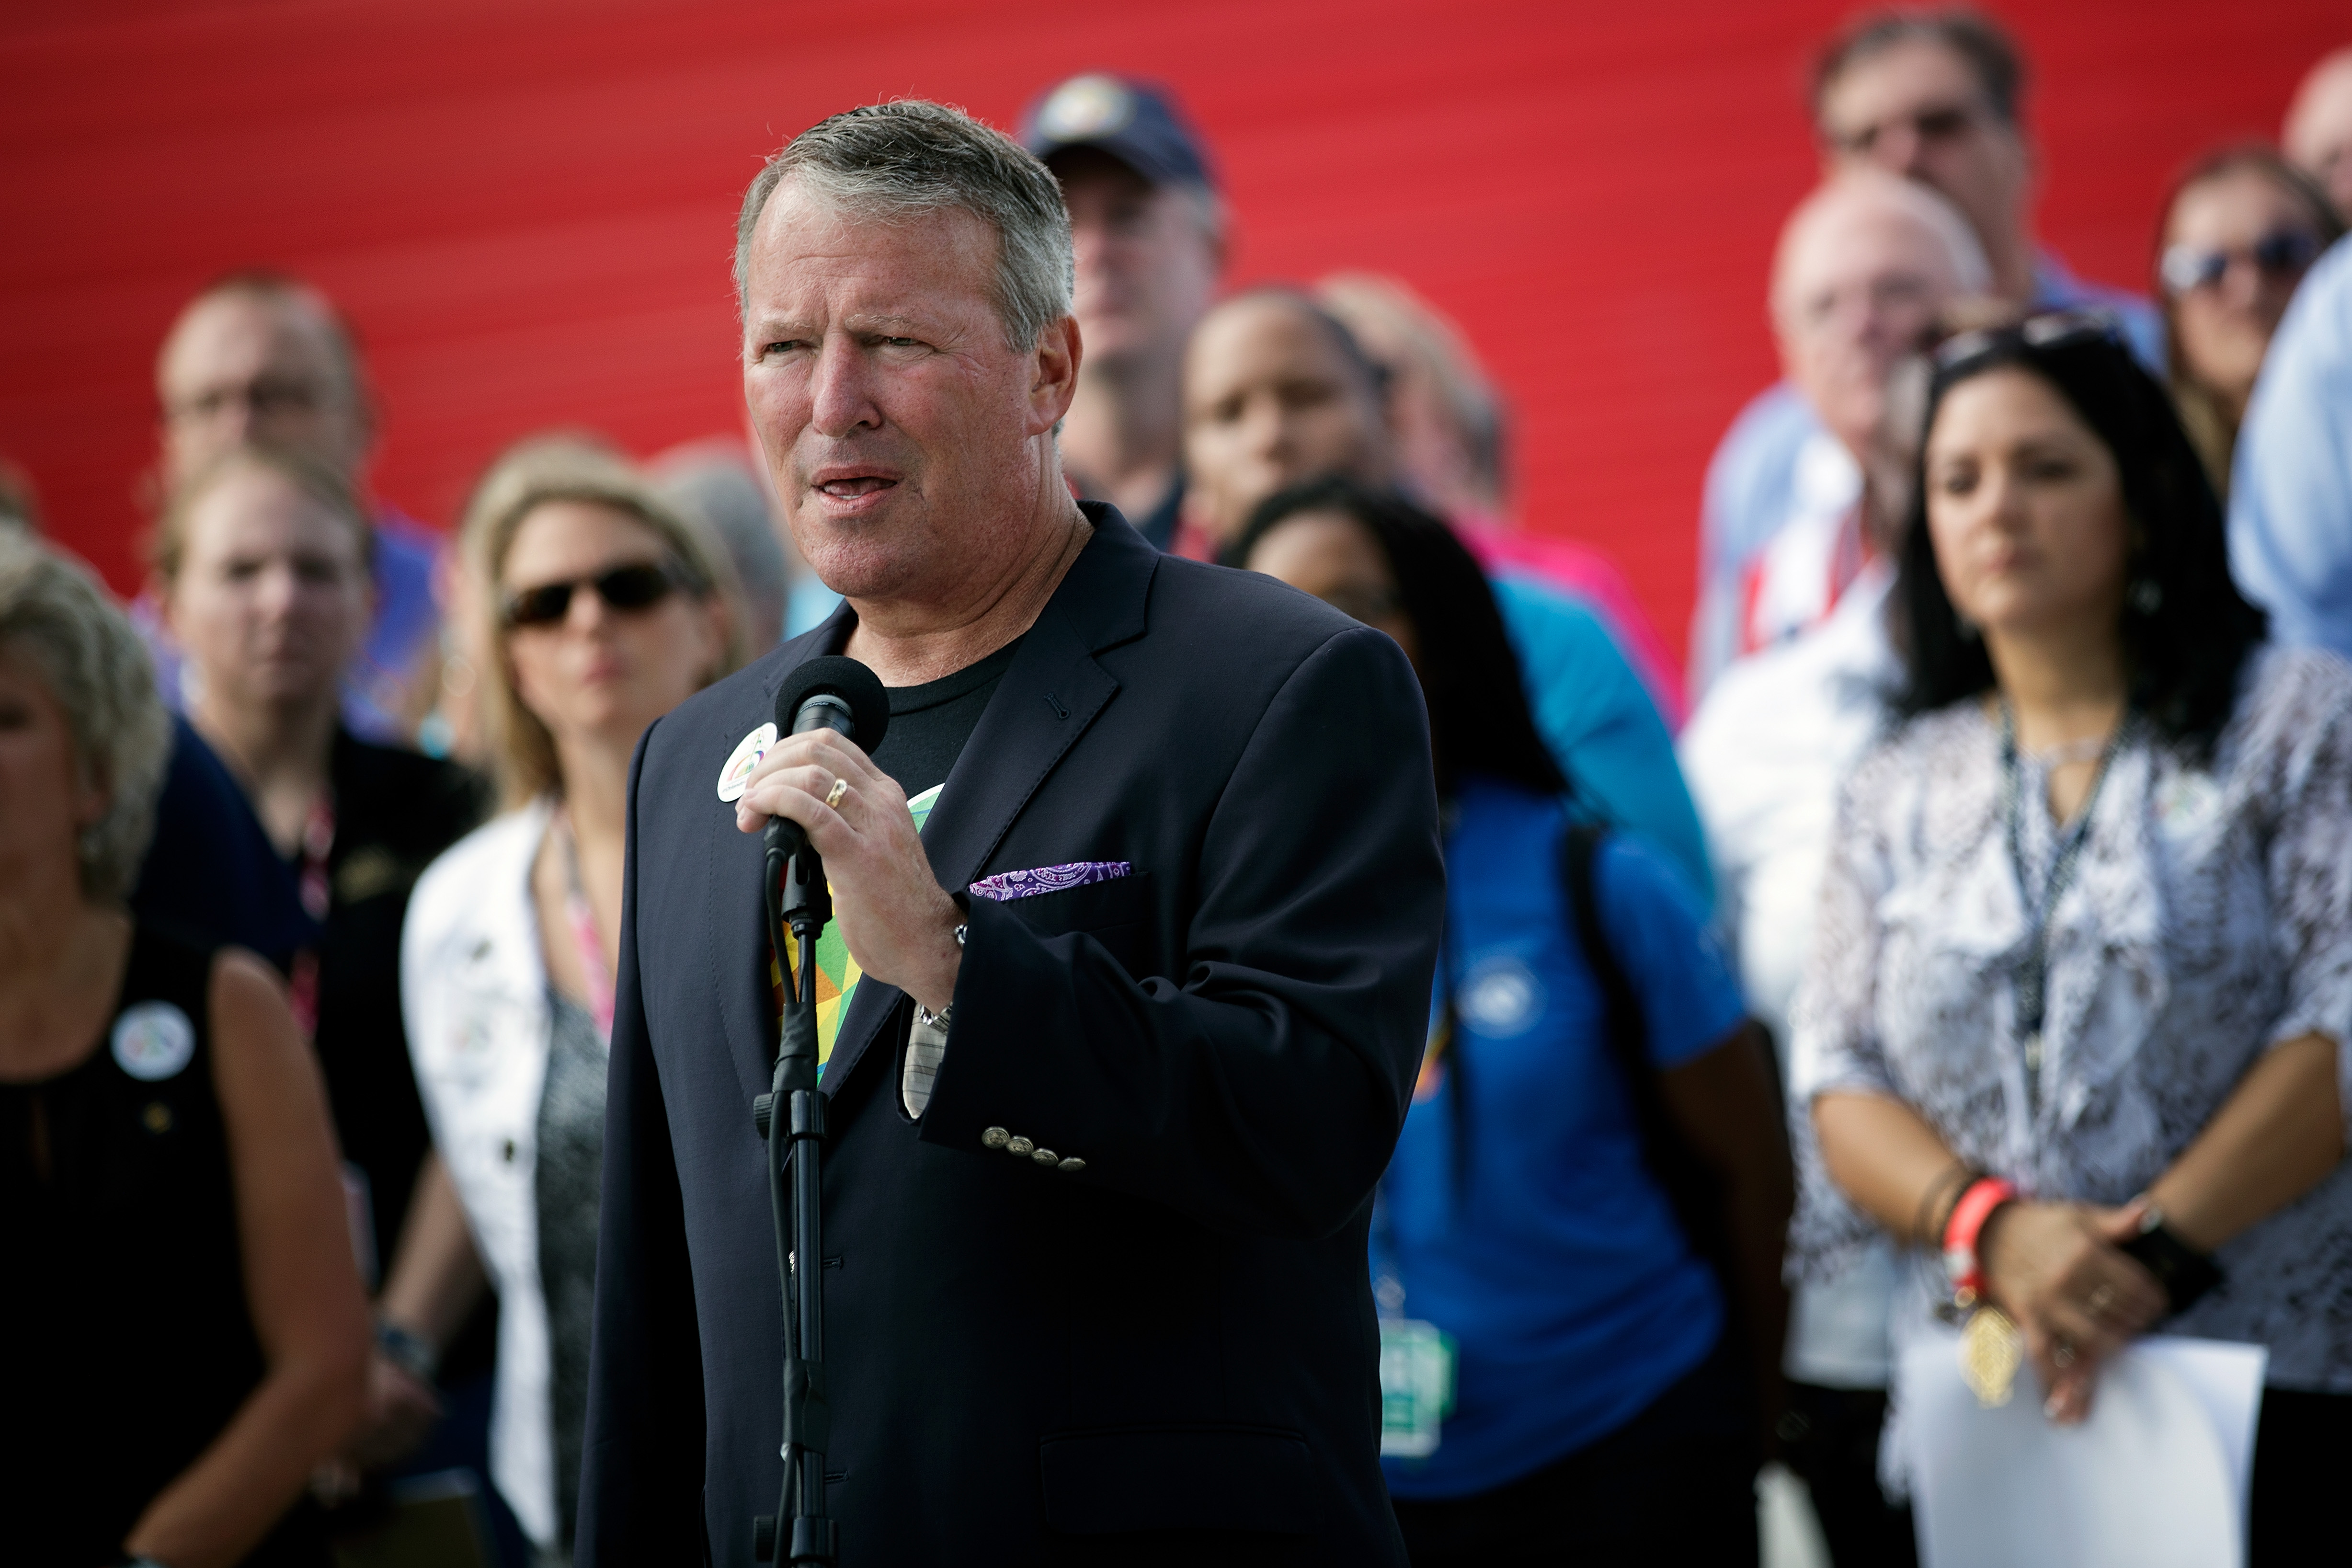 Surrounded by members of federal, state and local agencies, Orlando Mayor Buddy Dyer speaks at a press conference to provide an update on the assistance being provided to victims' families at the Orland Family Assistance Center, at Camping World Stadium, June 17, 2016 in Orlando, Florida.